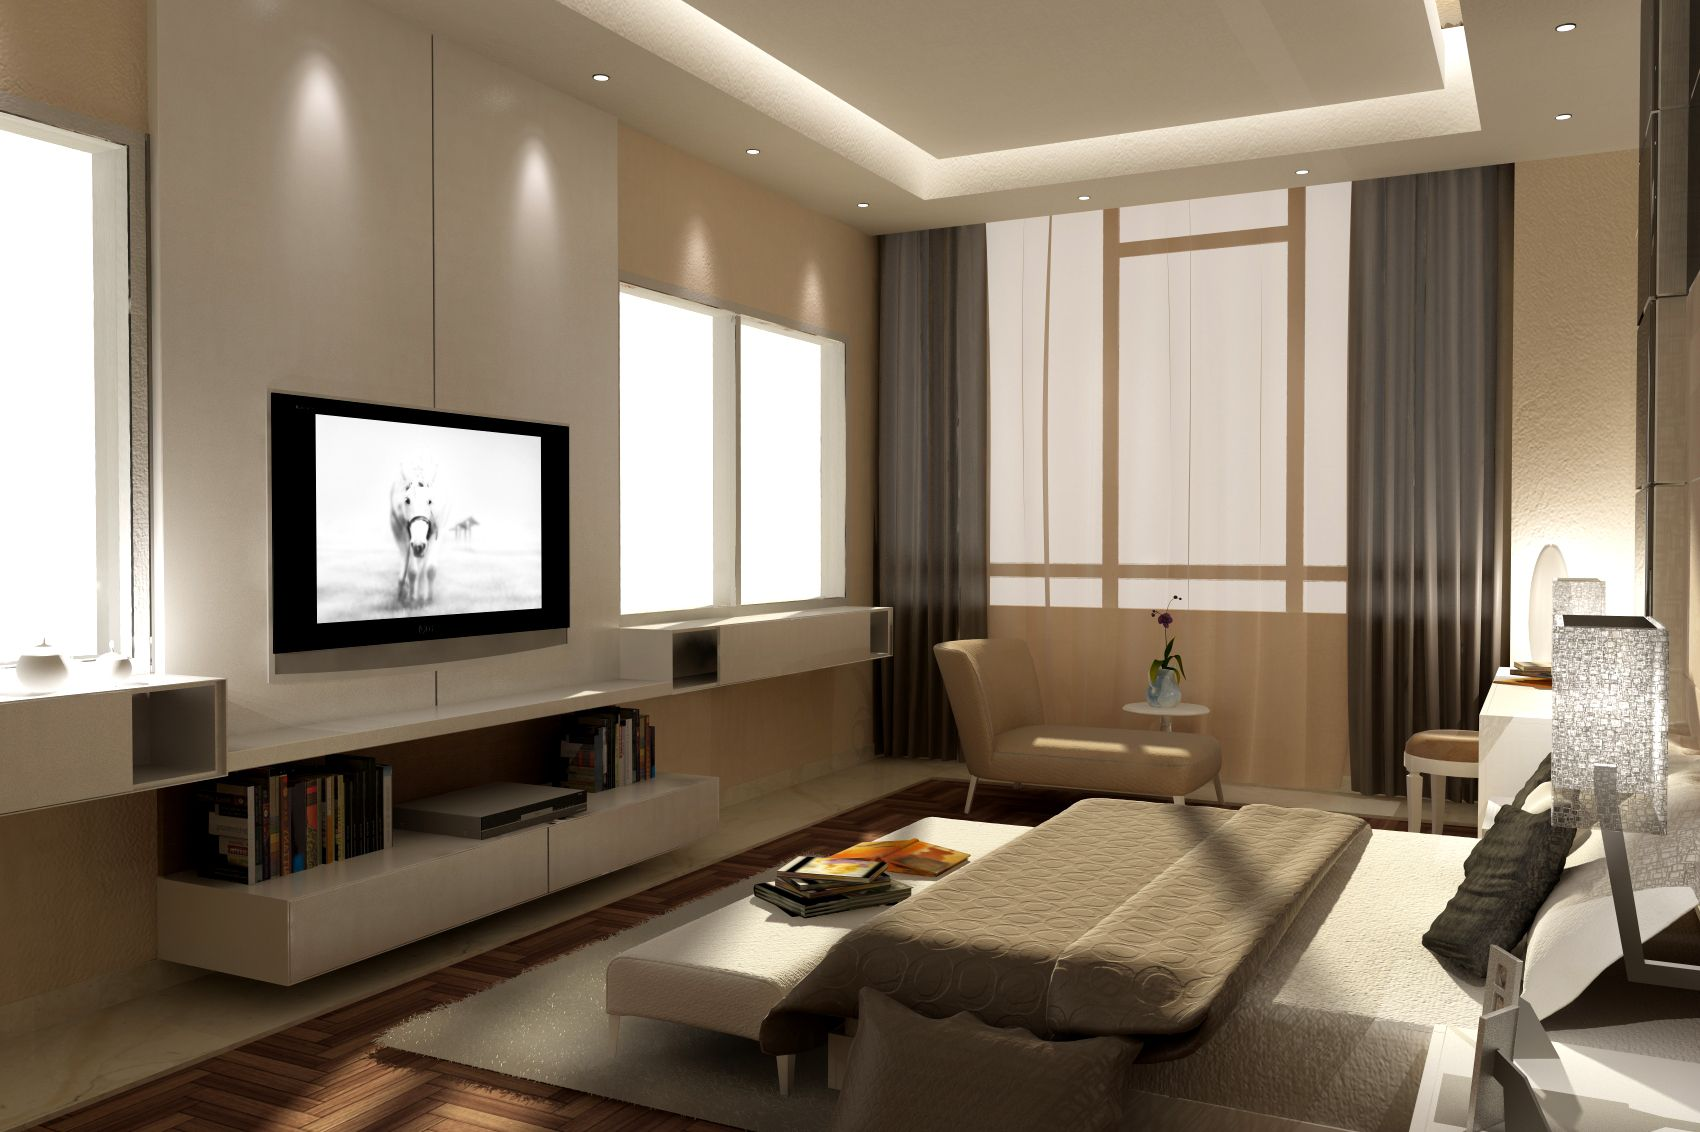 Bedroom modern bedroom interior design 3d max 3d for Modern house interior design bedroom